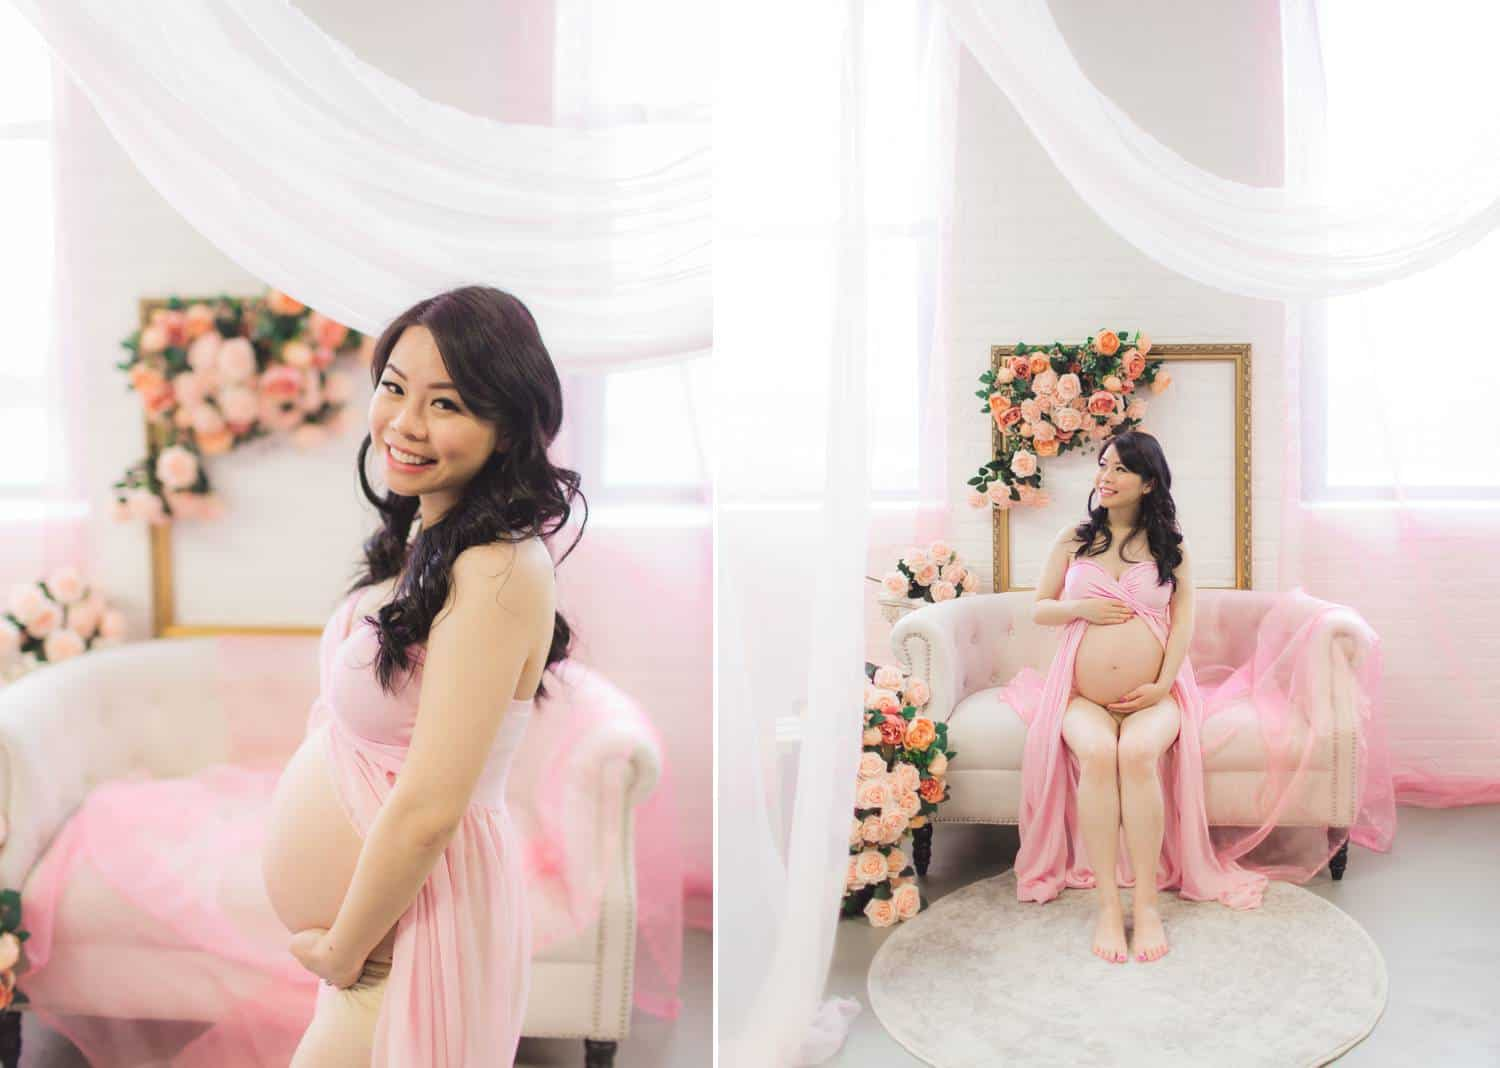 Side-by-side vertical portraits depict a young, Asian, pregnant woman wearing a semi-sheer, light pink dress in a pink-decorated bedroom adorned with flowers.